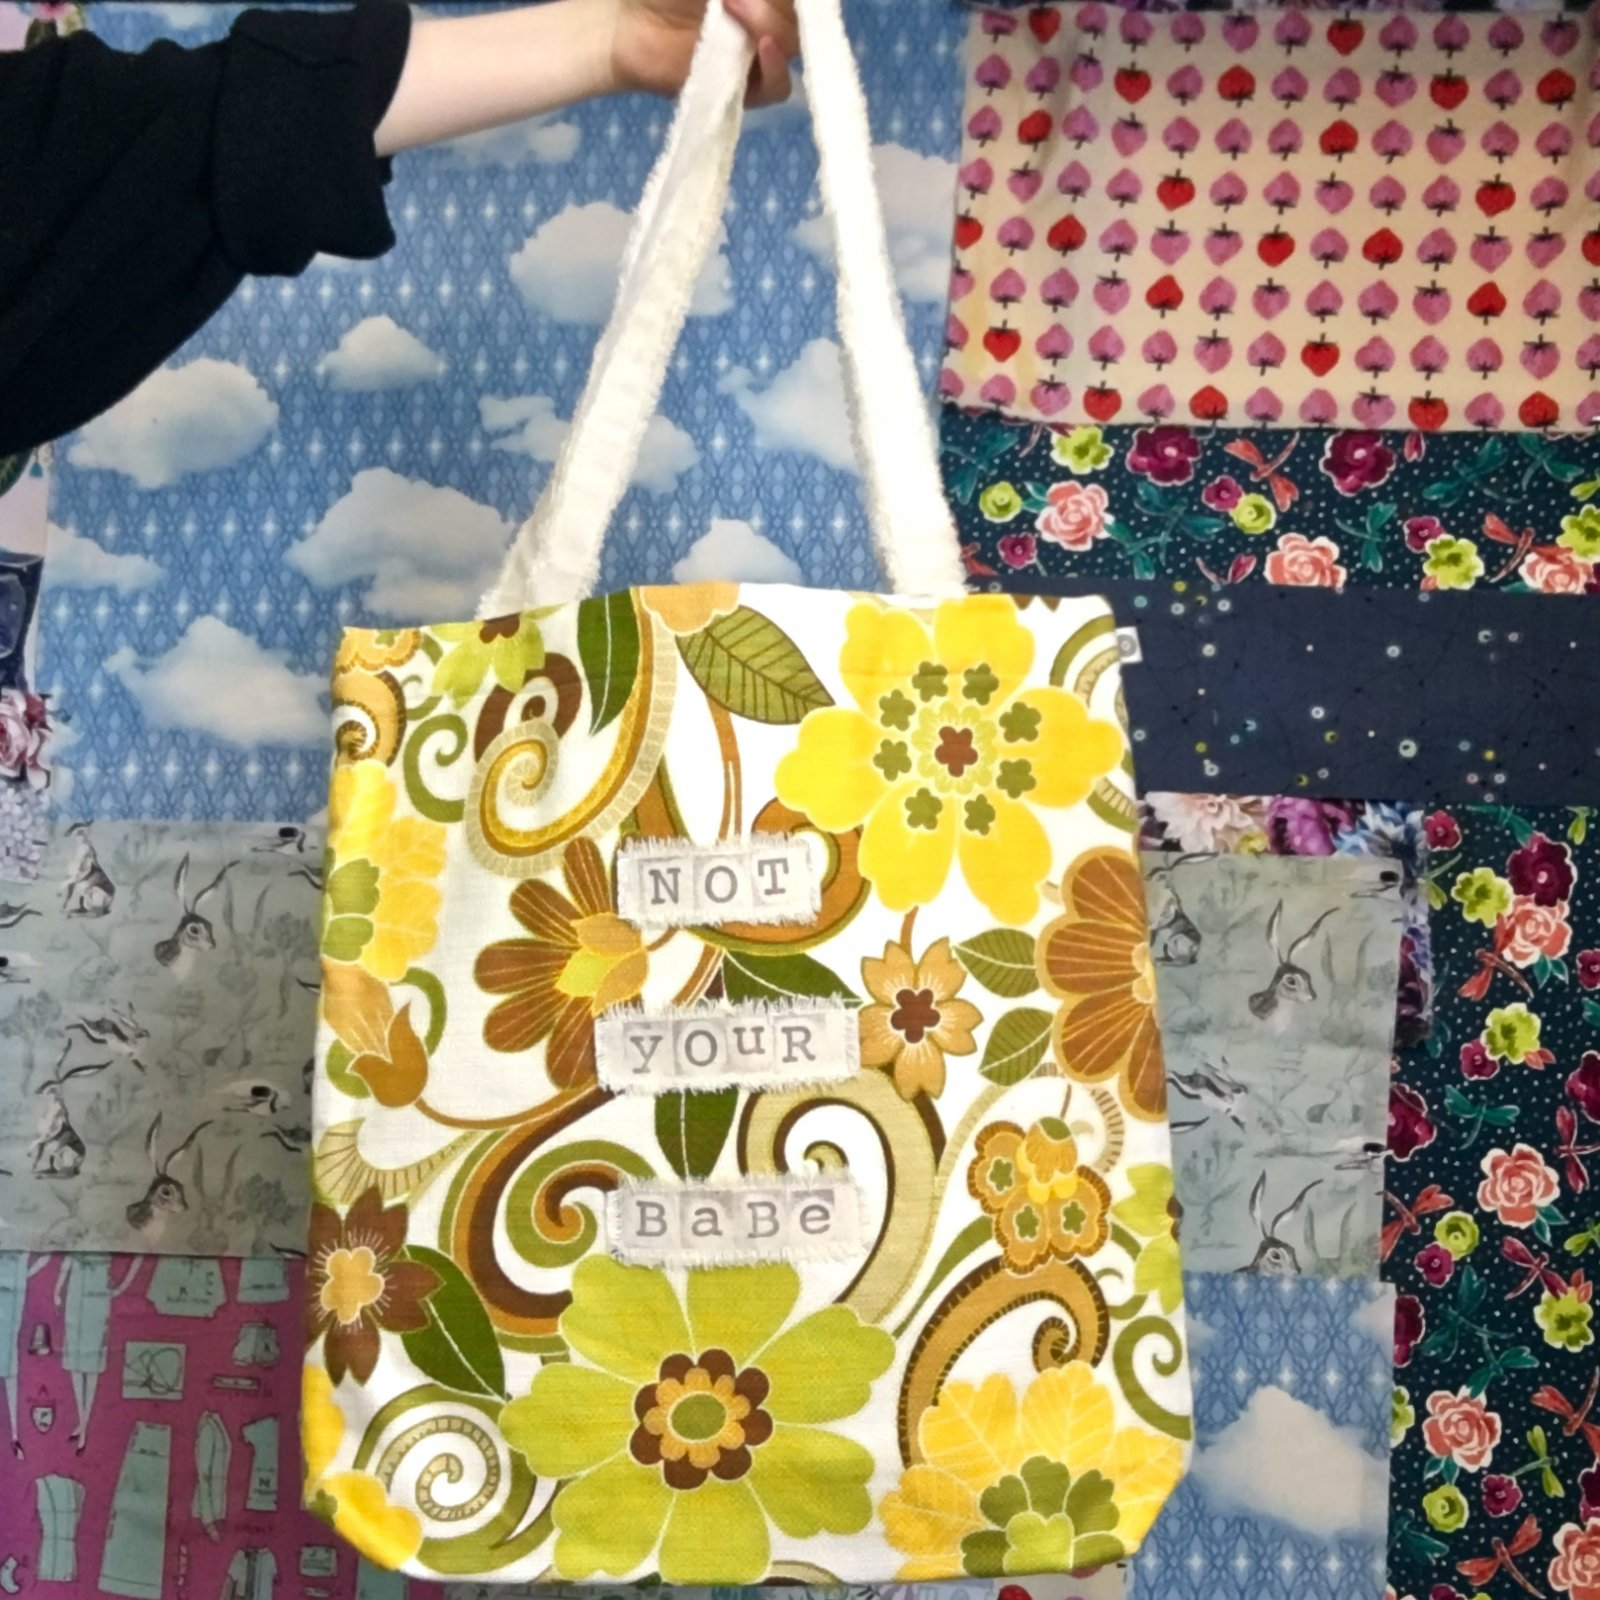 'Not Your Babe' Handmade Groovy Tote Bag